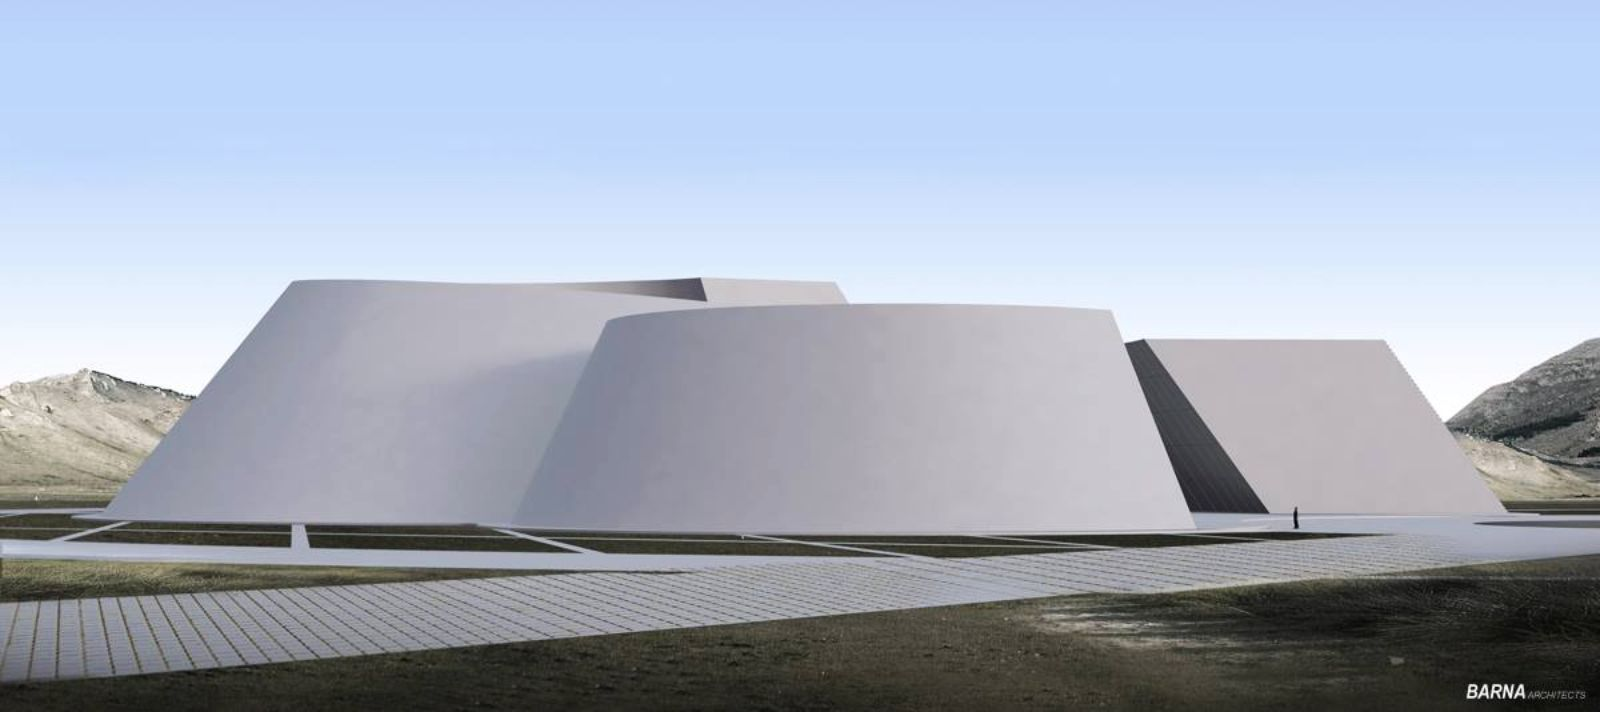 National Archaeological Museum Of Mongolia By Barna Architects Architecture Amazing Architecture Public Space Design